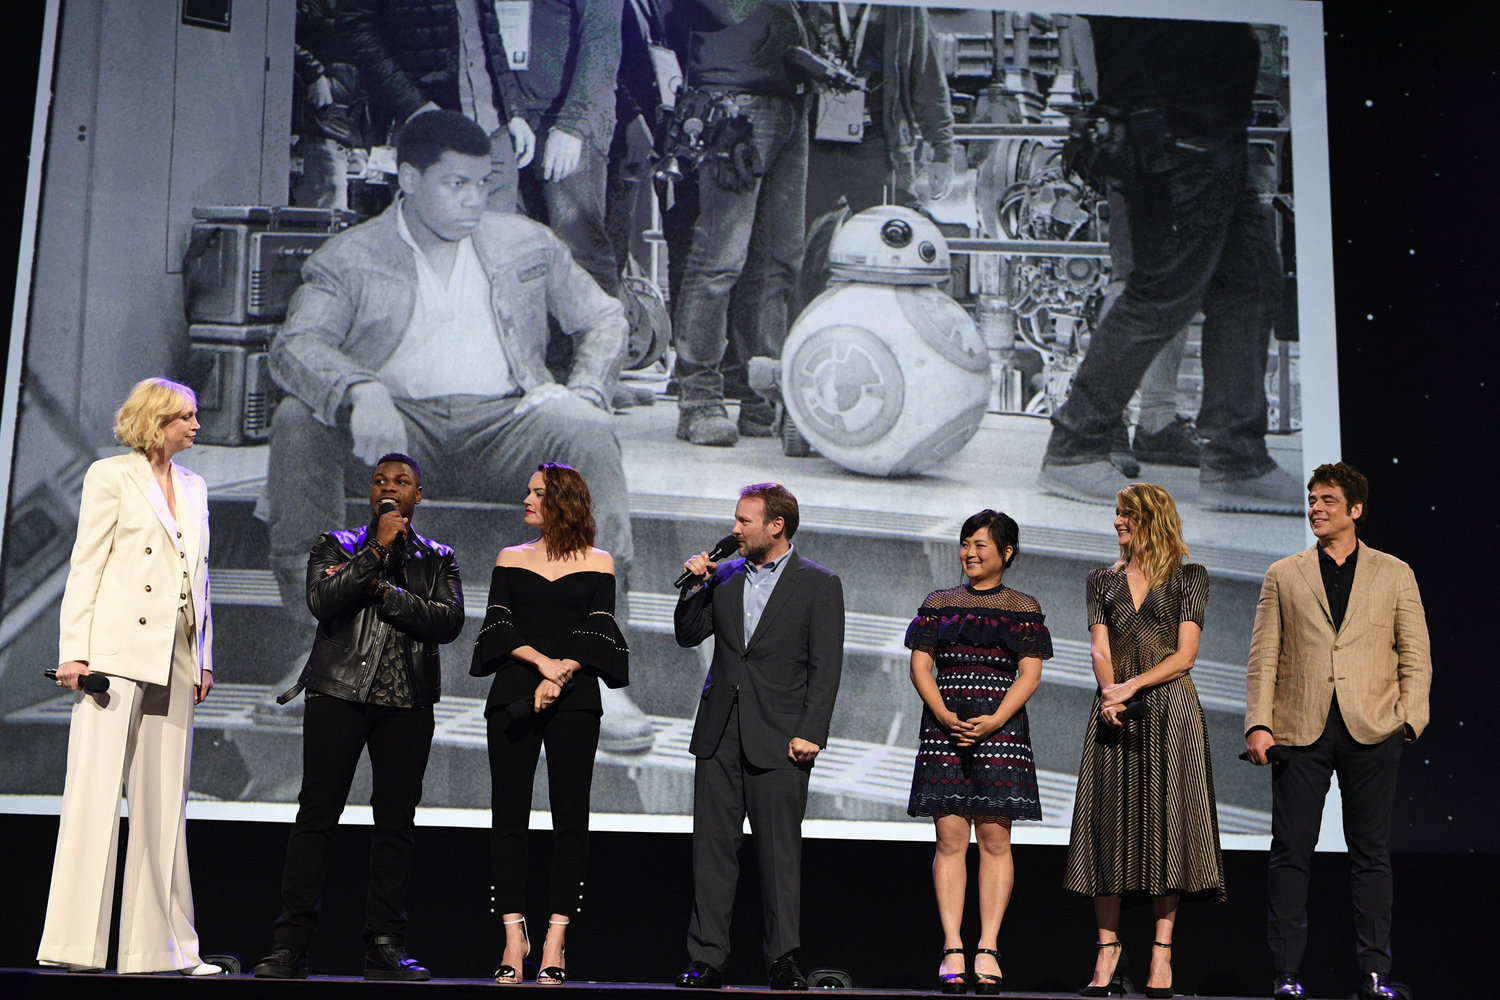 'THE LAST JEDI.' The cast of 'Star Wars: The Last Jedi' takes the stage at D23 Expo 2017. From left to right: Gwendoline Christie, John Boyega, Daisy Ridley, director Rian Johnson, Kelly Marie Tran, Laura Dern, and Benicio del Toro. Photo by Disney/Image Group LA